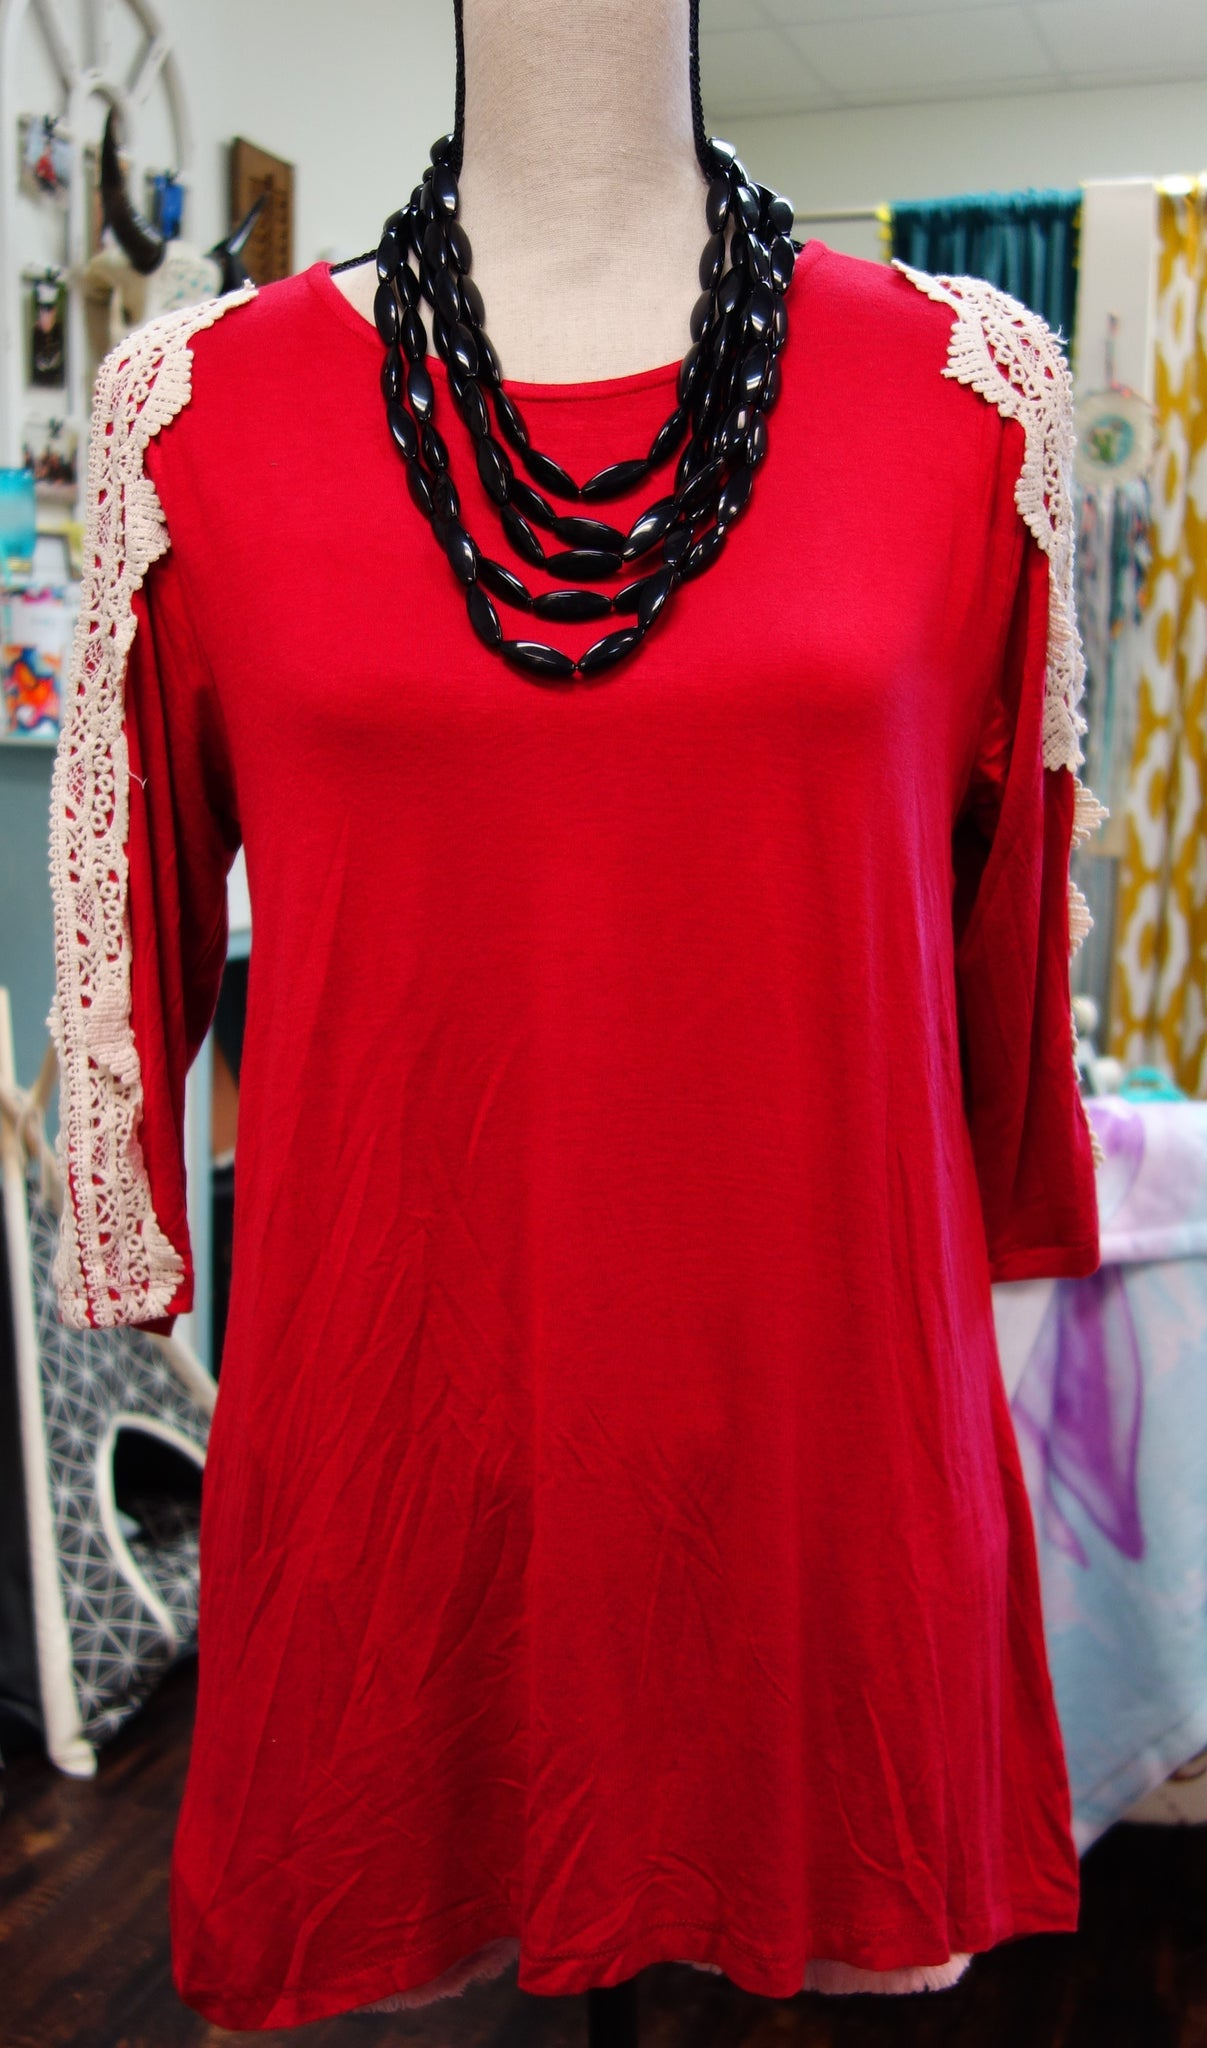 Red Cold Shoulder Top w/ Lace Detail